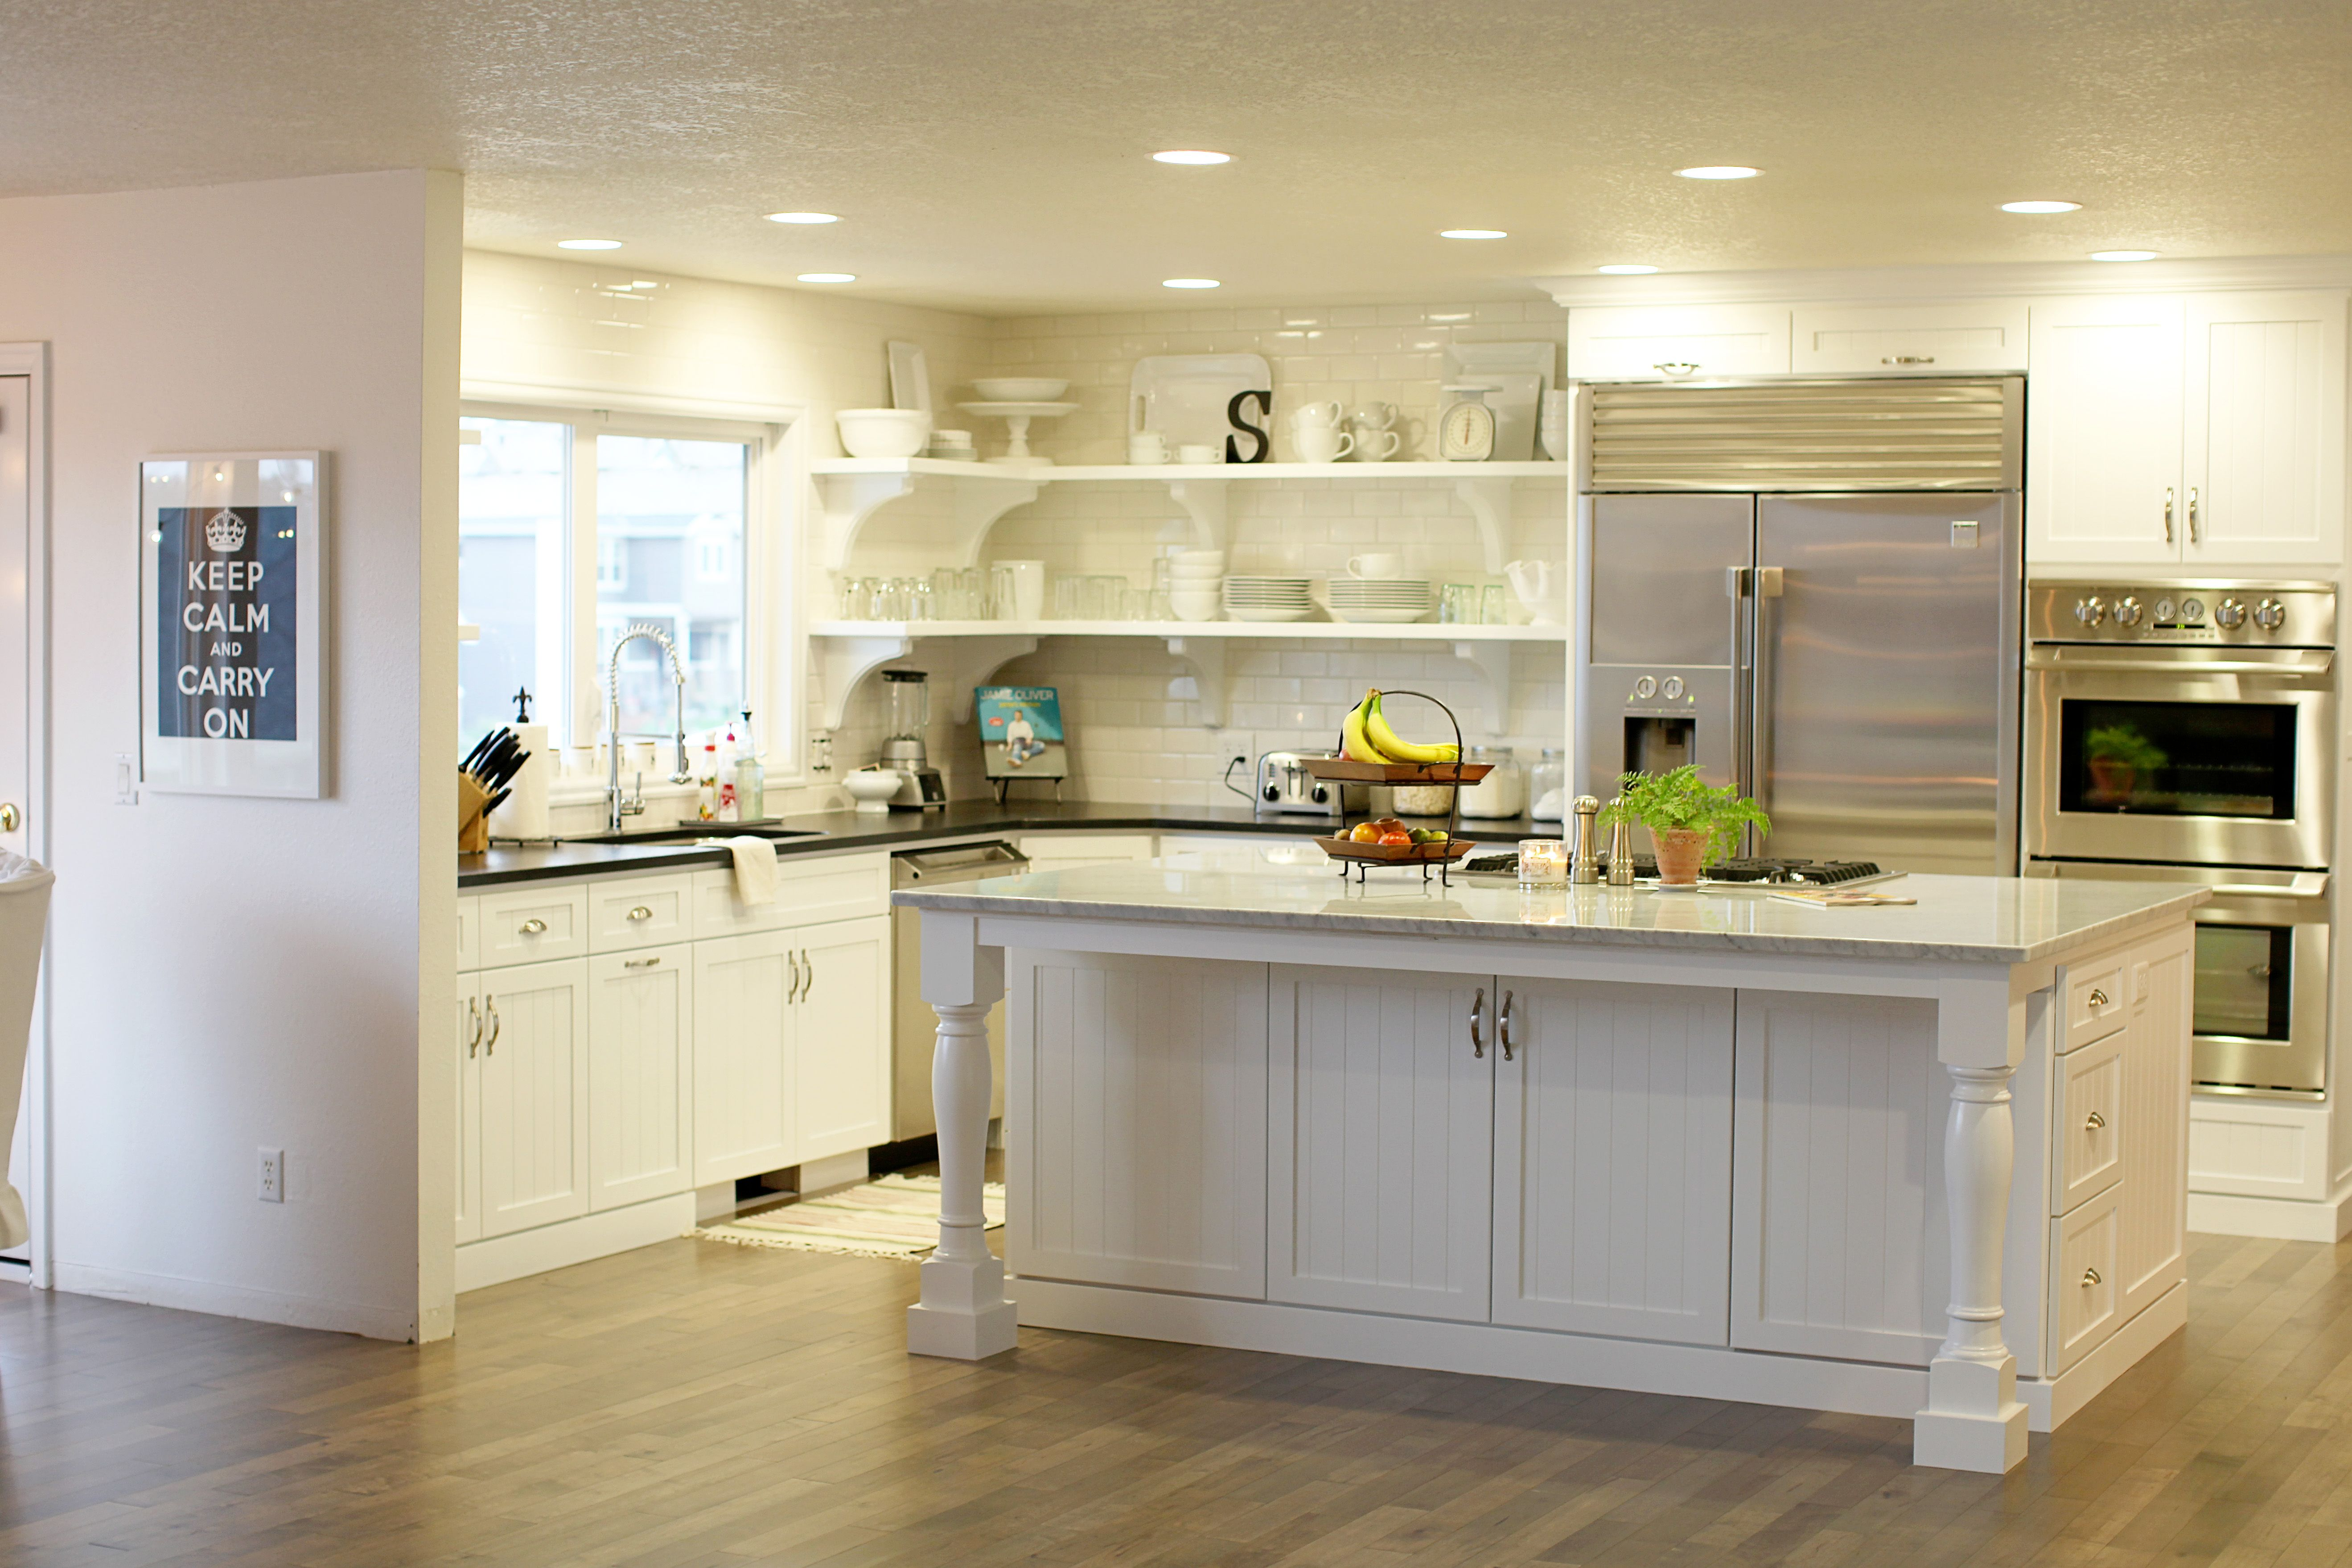 kitchen island with open shelves kitchen with open shelves and island storage options 24814